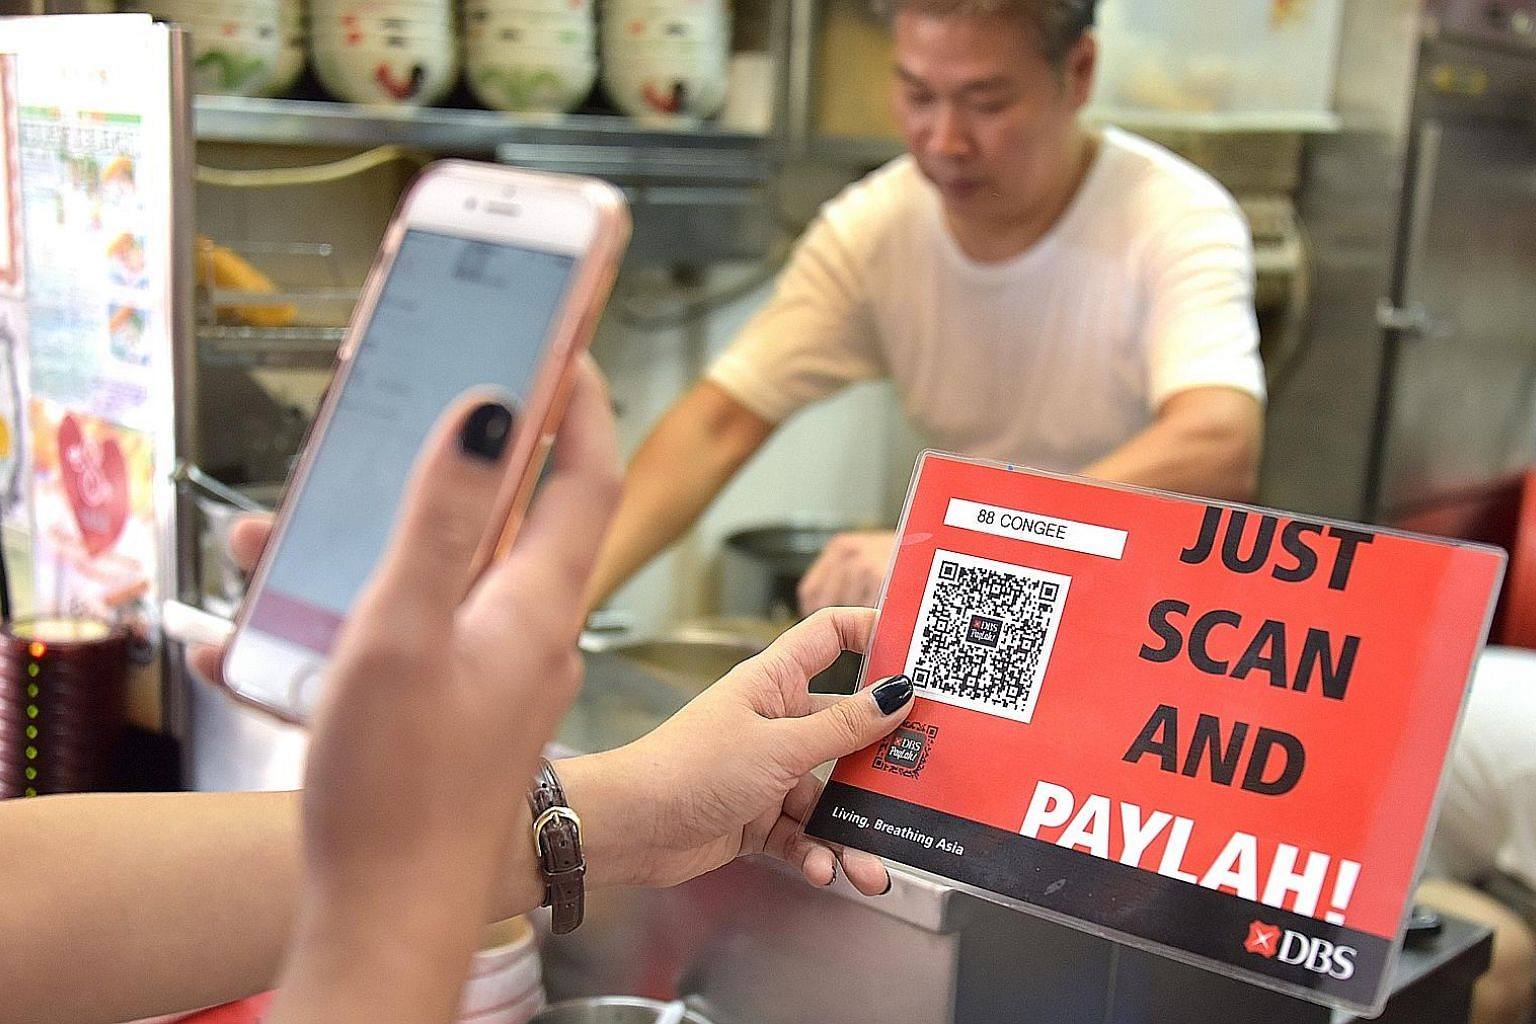 A customer paying for food using mobile payment app DBS PayLah at a hawker centre. This app, says DBS chief executive Piyush Gupta, is an example of how the bank leverages ecosystems to be where clients are.